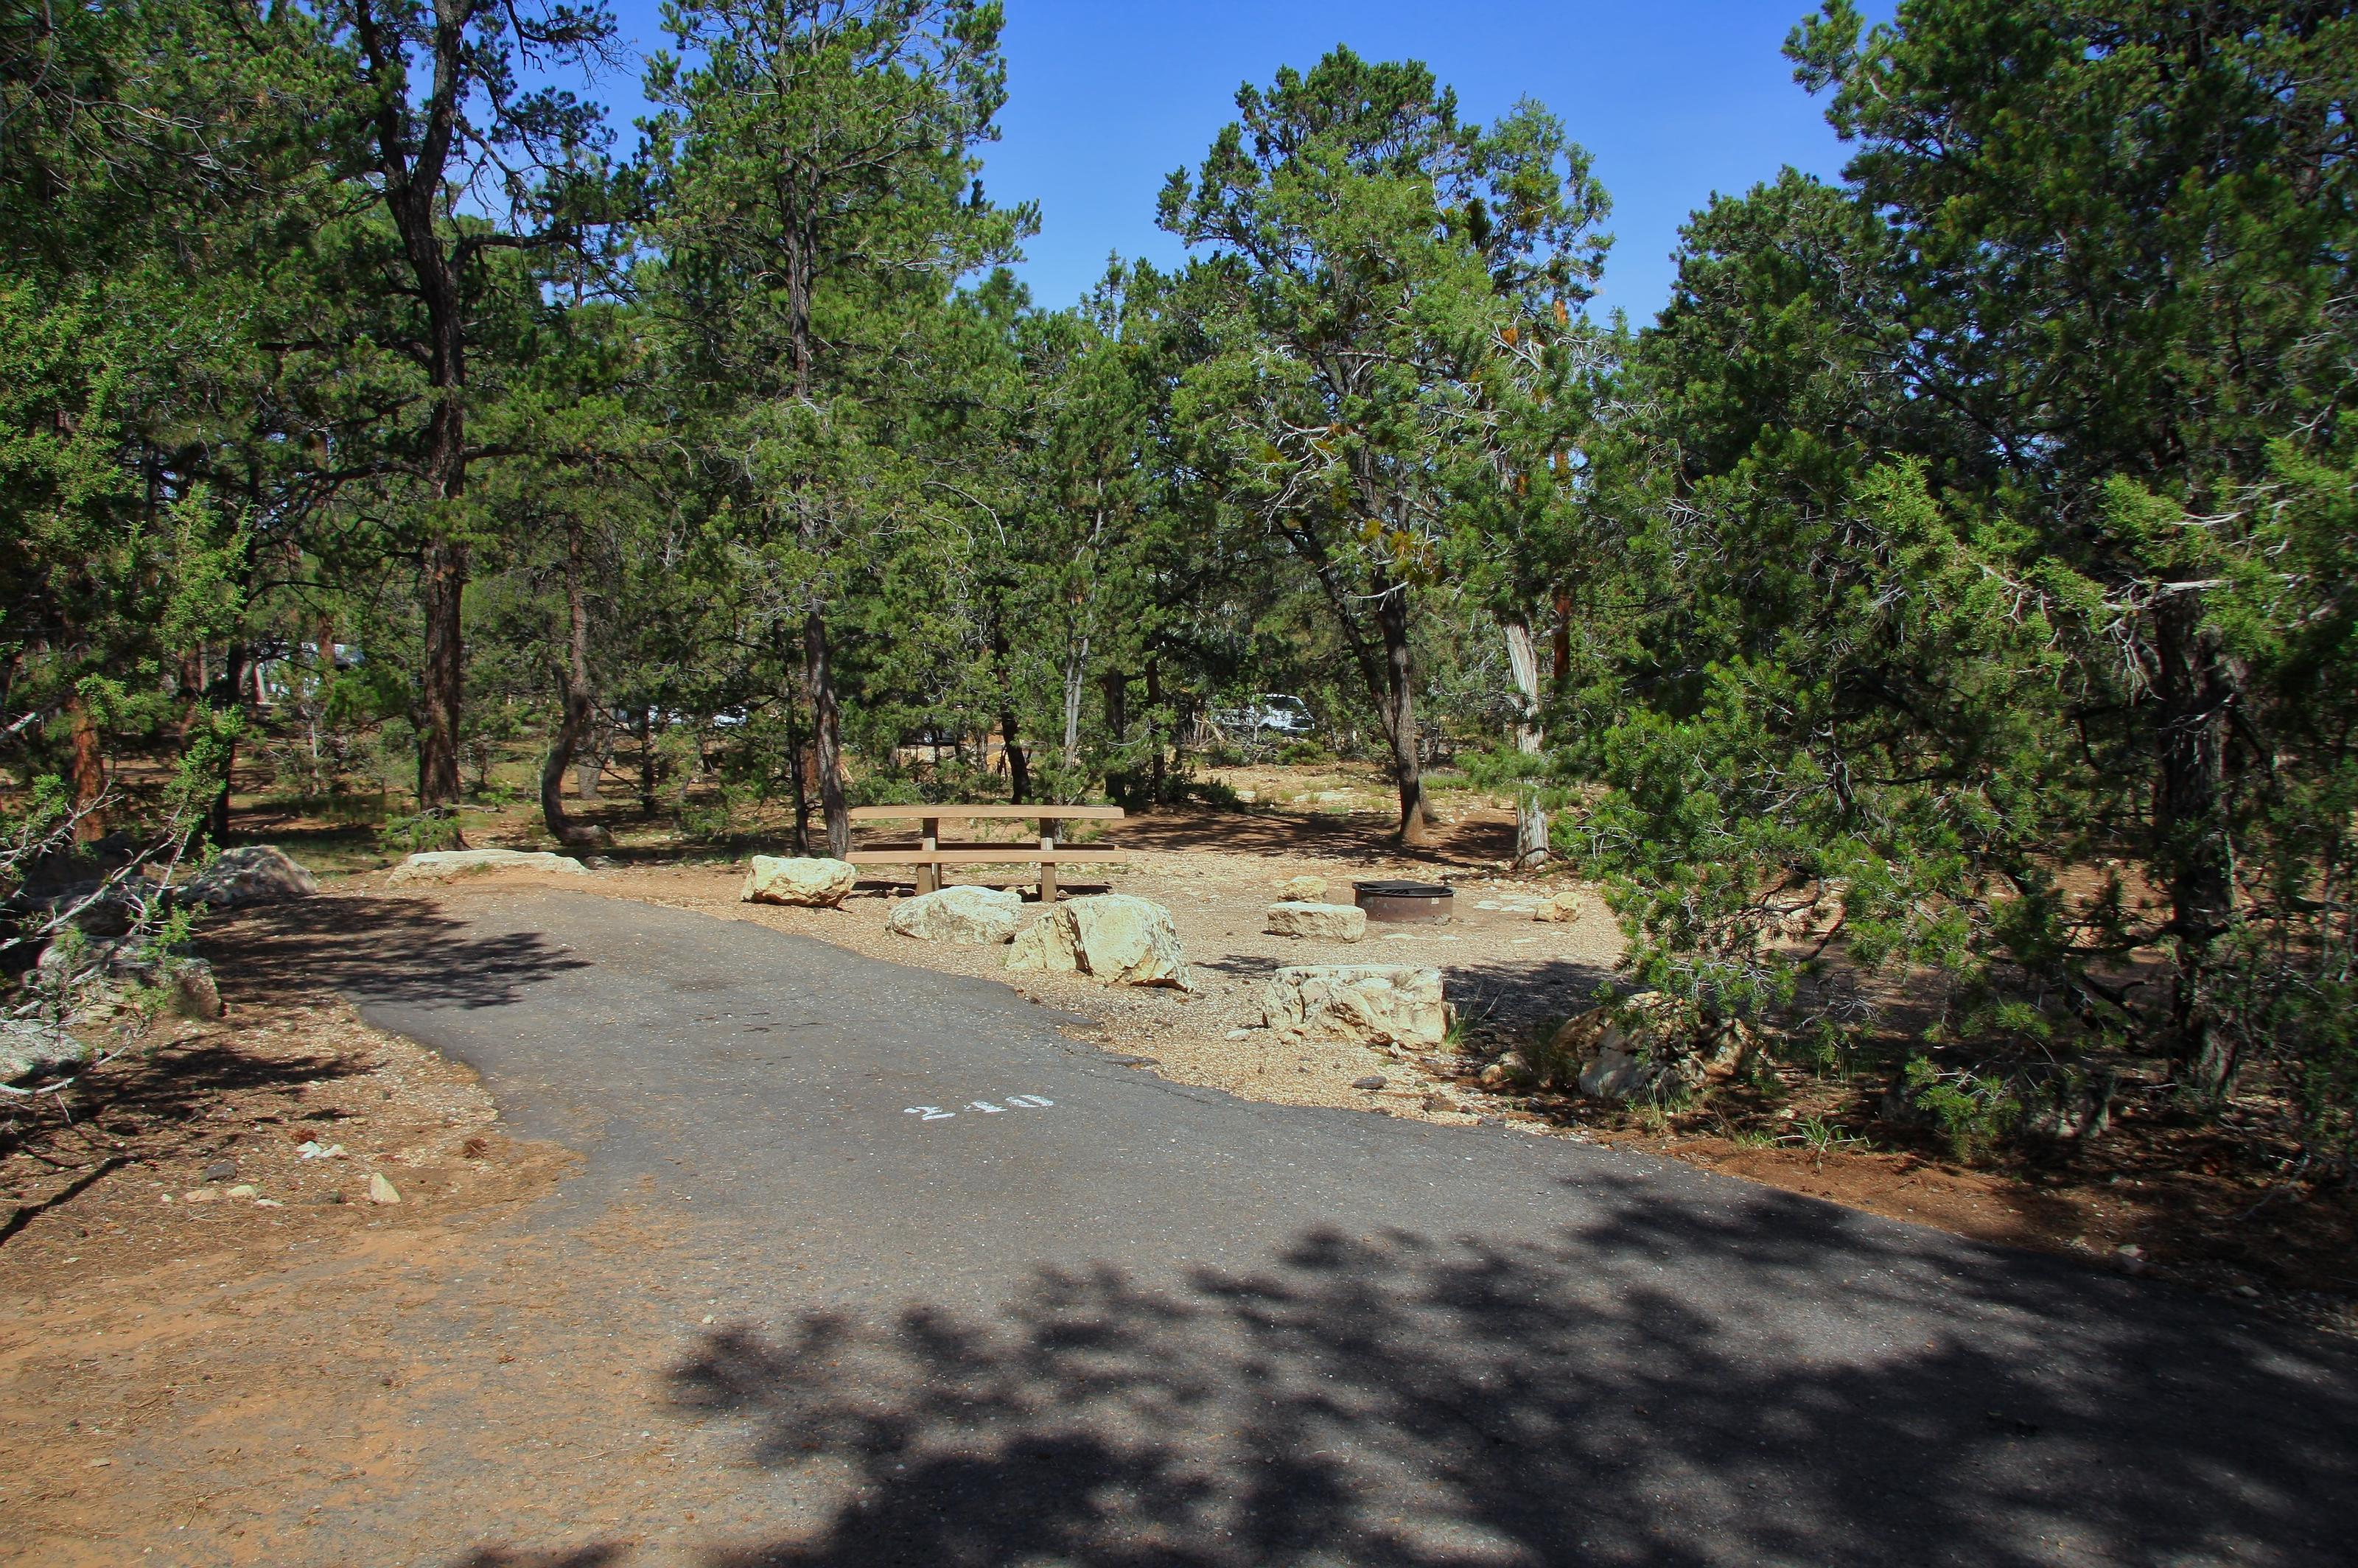 Picnic table, fire pit, and park spot, Mather CampgroundPicnic table, fire pit, and park spot for Oak Loop 240, Mather Campground